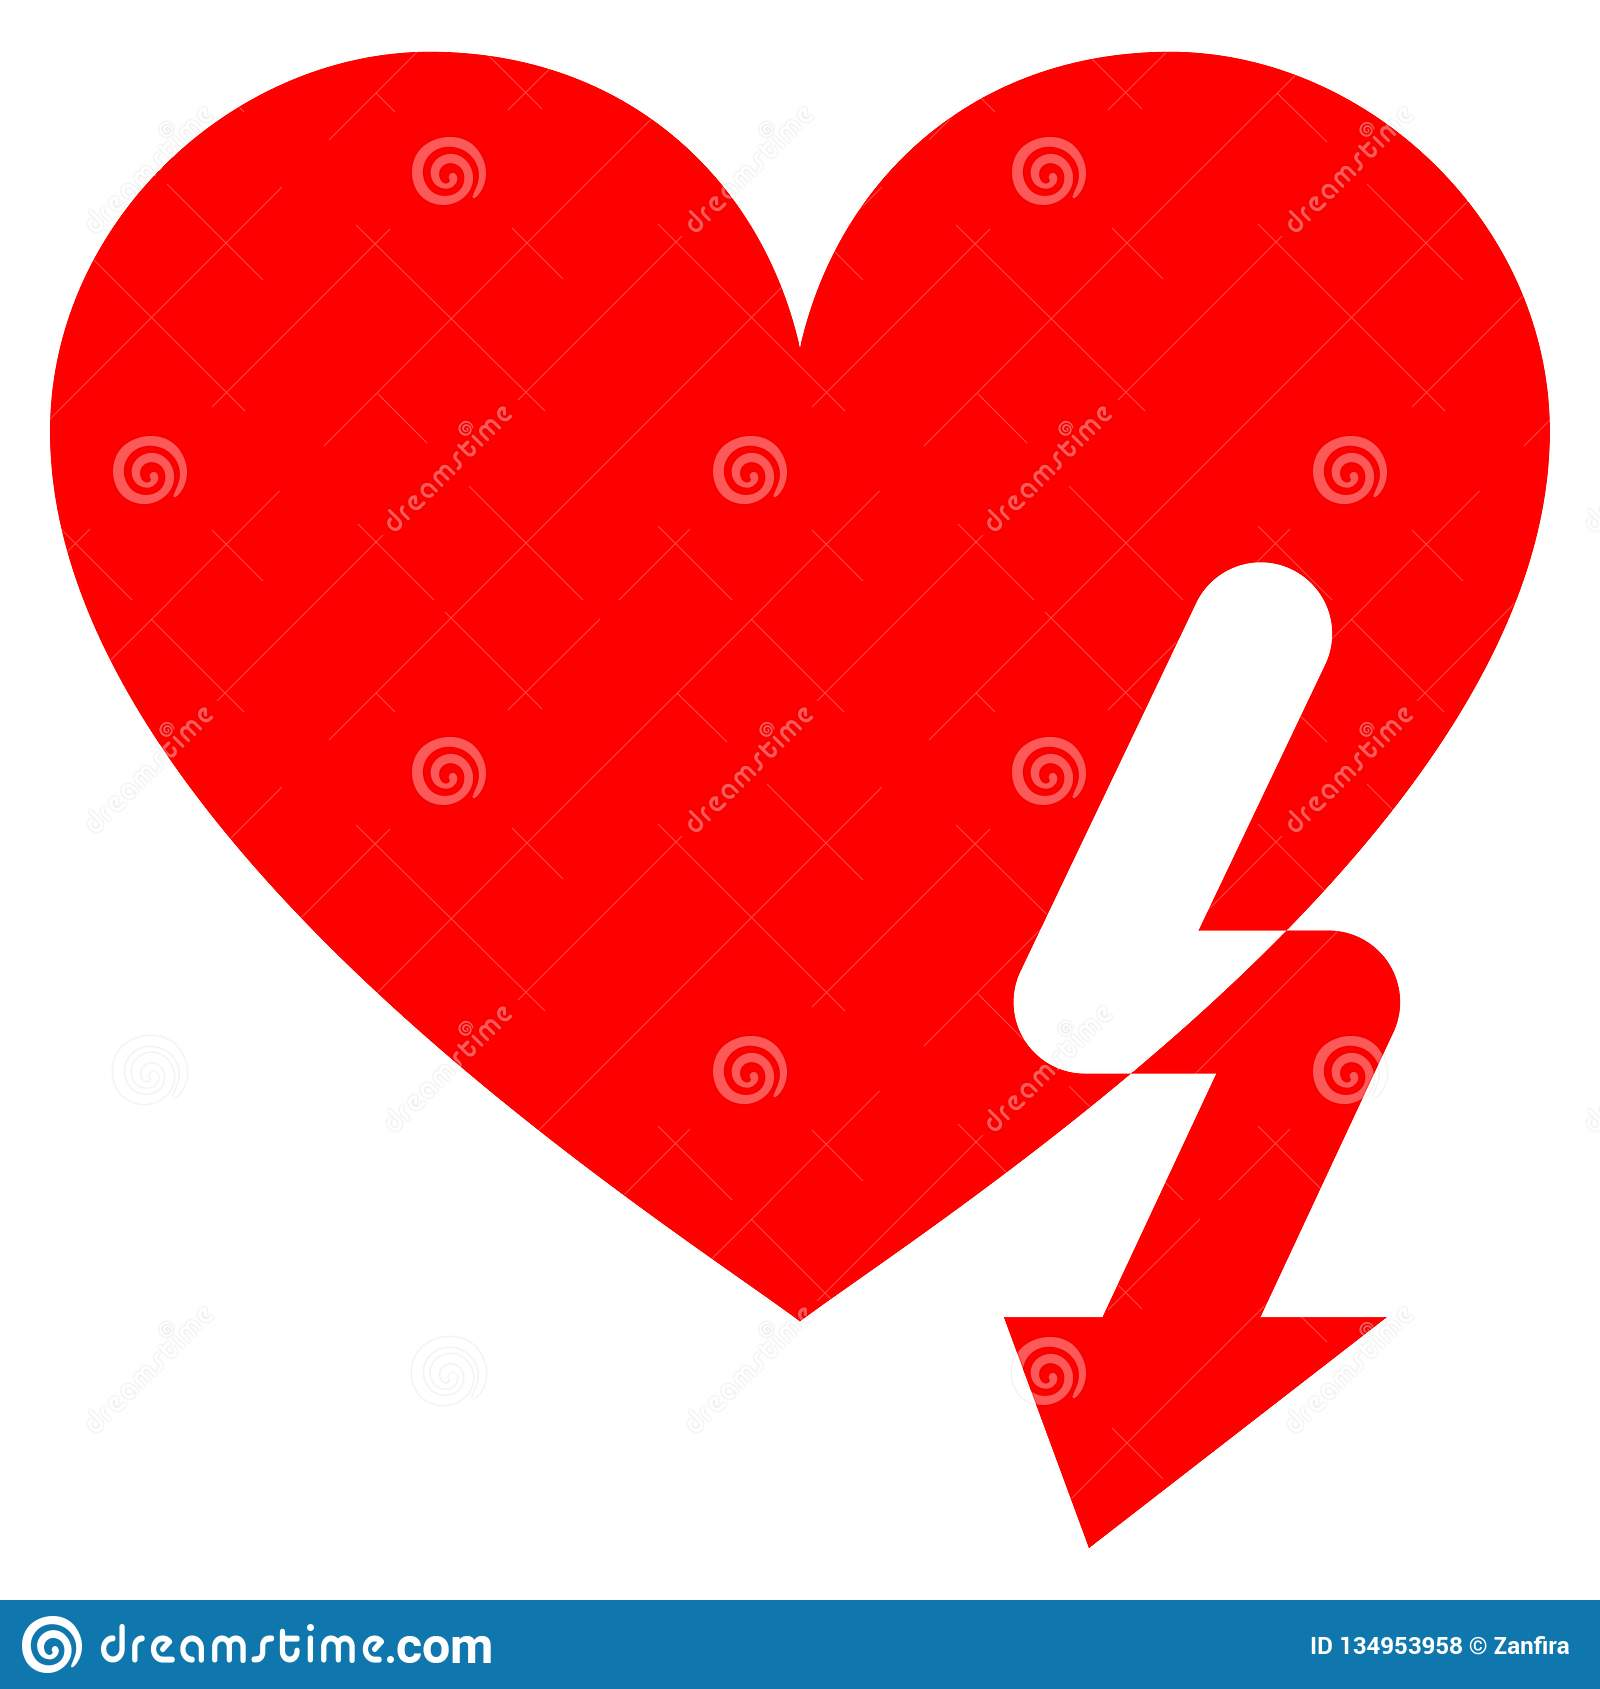 Love Heart Strike Flat Icon Stock Vector - Illustration of icon